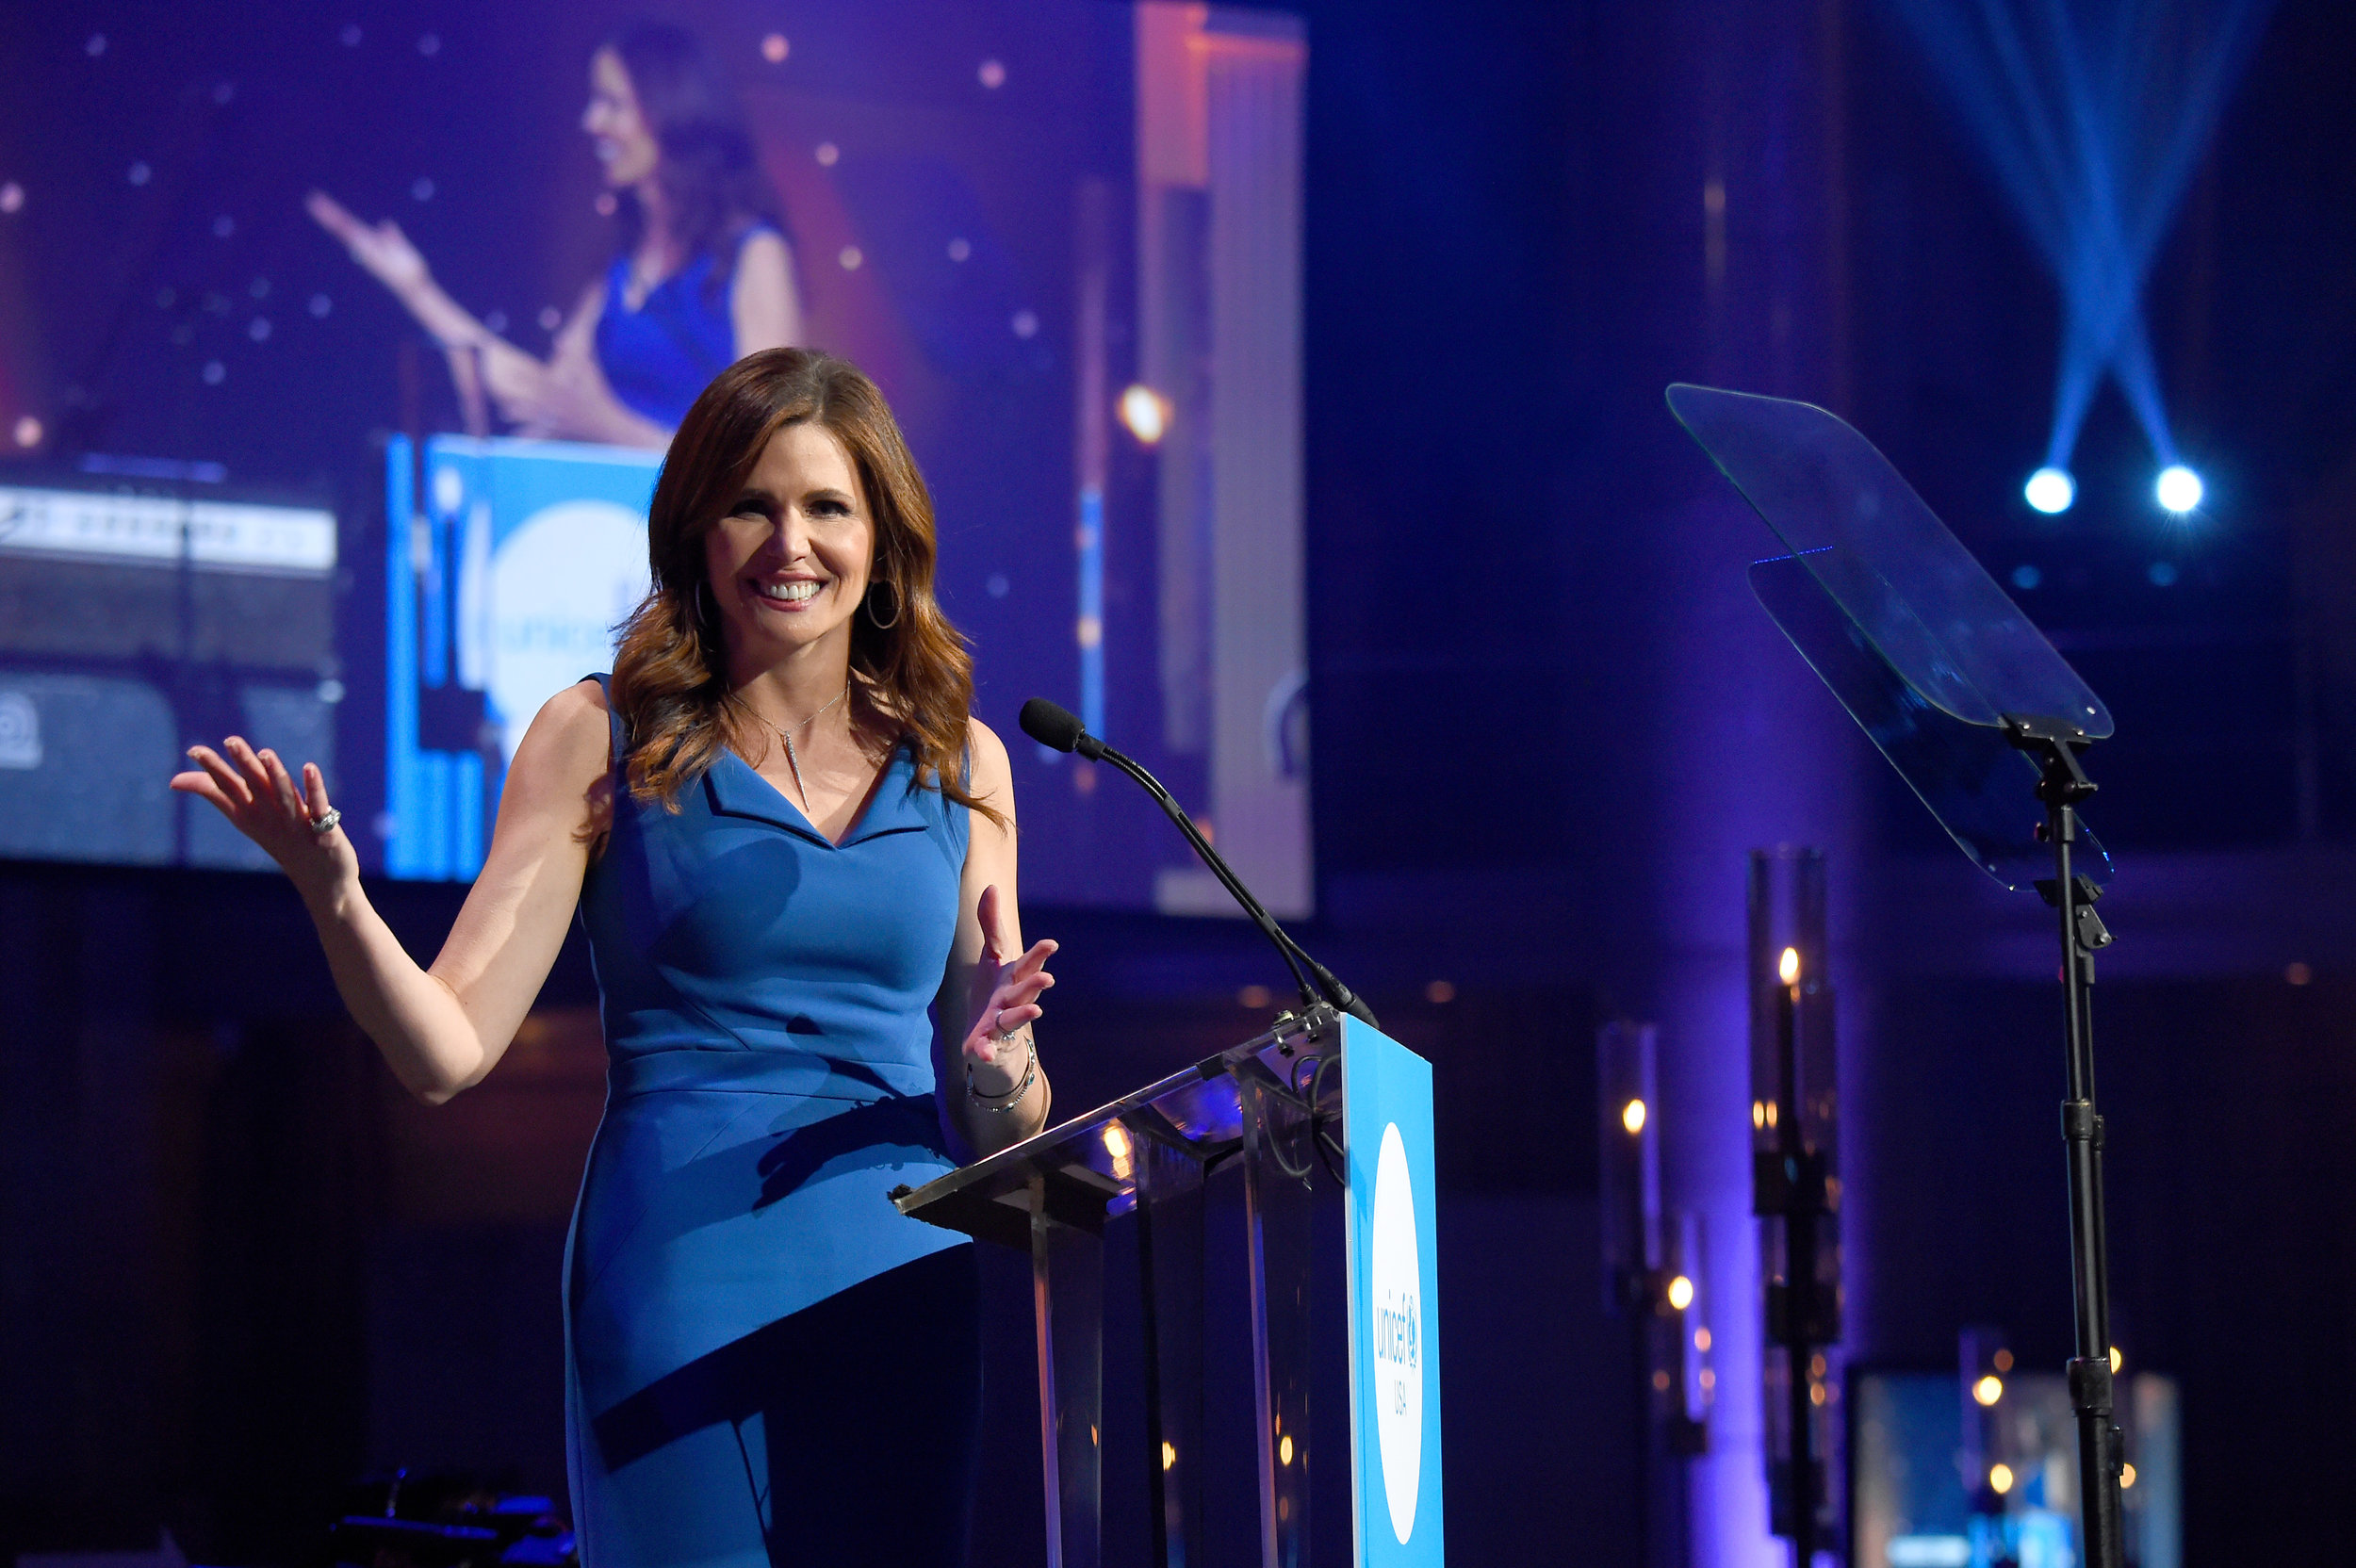 NEW YORK, NY - NOVEMBER 27: Honoree Desiree Gruber speaks onstage during the 14th Annual UNICEF Snowflake Ball 2018 on November 27, 2018 in New York City. (Photo by Nicholas Hunt/Getty Images for UNICEF)